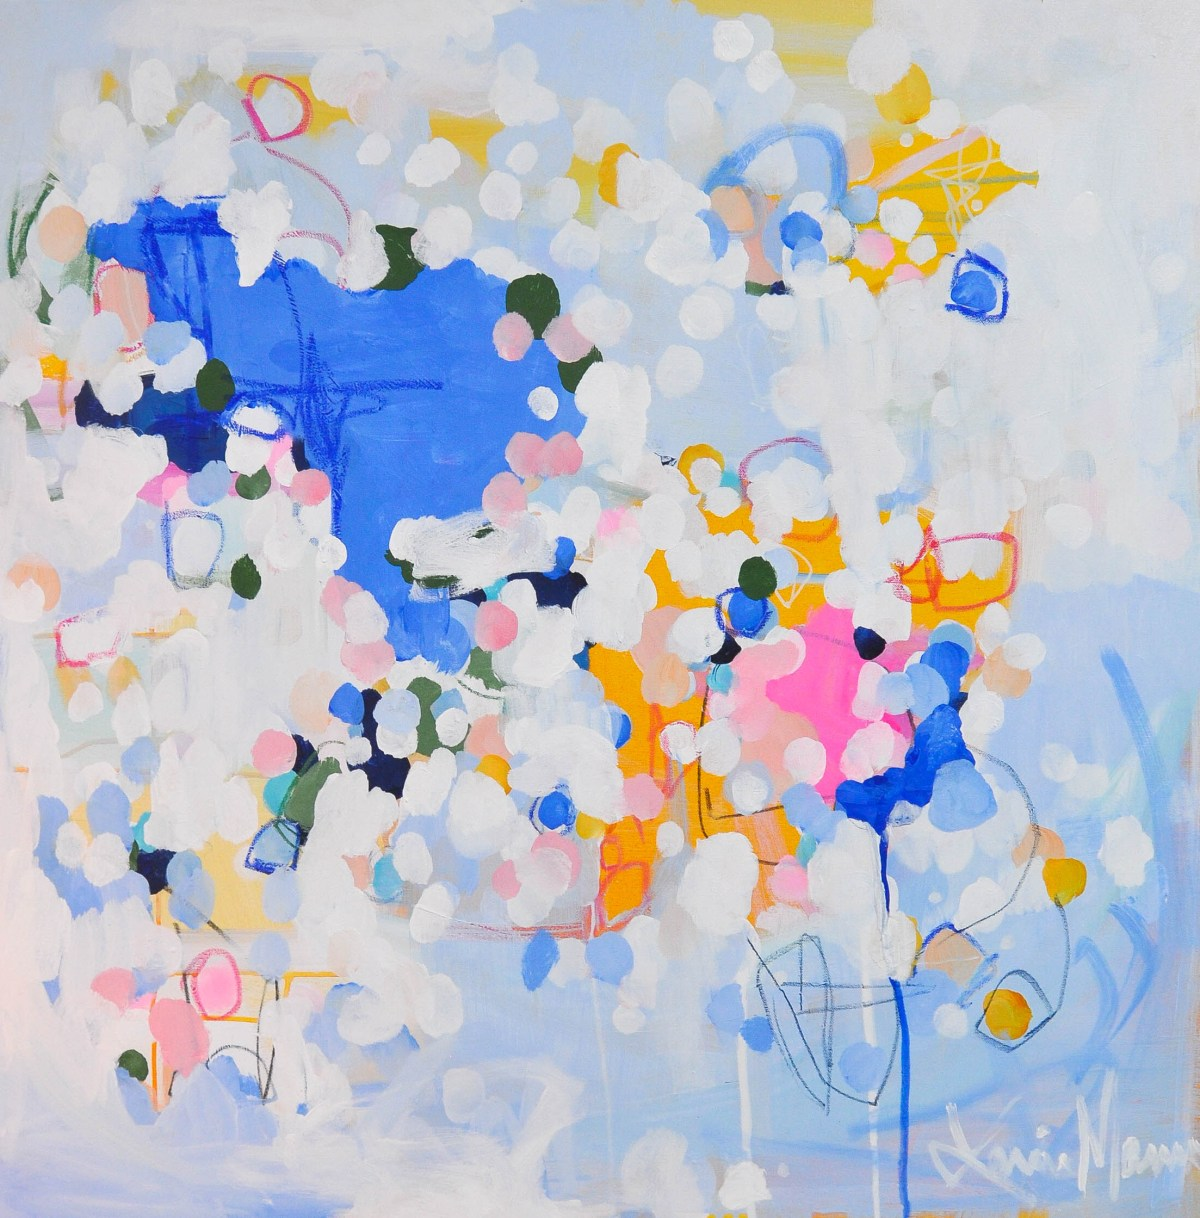 An abstract painting by DC artist Lanie Mann feels like spring eternal, as if you're looking up at the blue sky through a spray of fluttering cherry blossom petals.